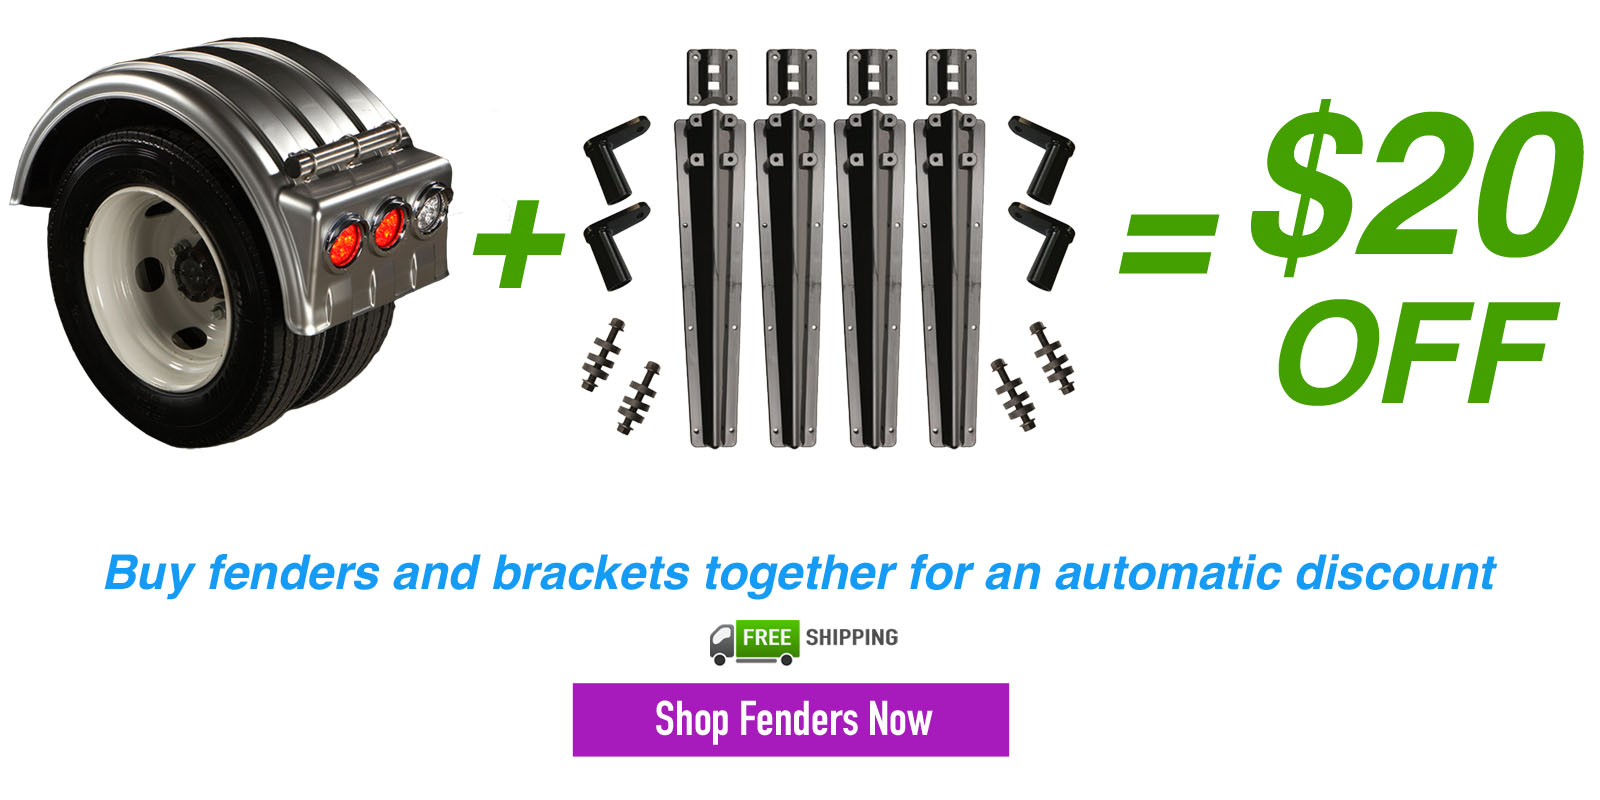 $20 off Fender and Bracket Combo